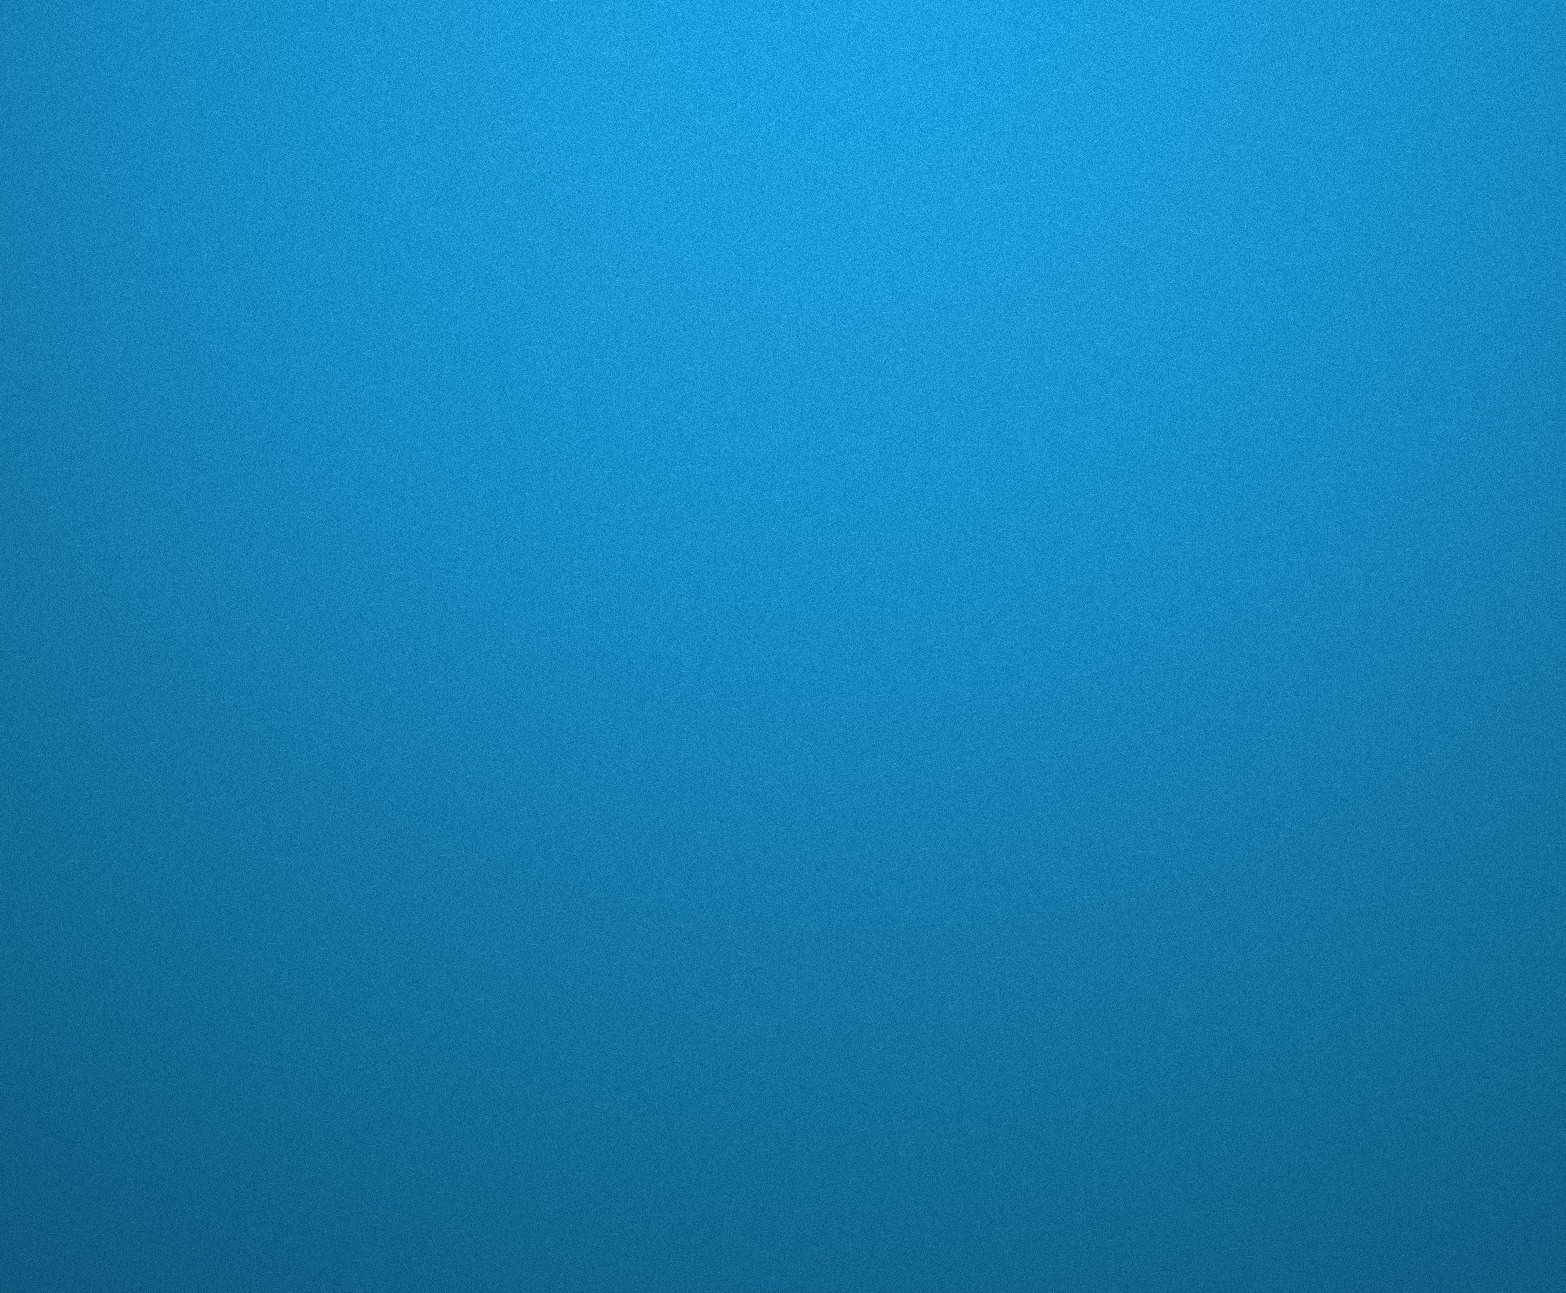 Free Plain Blue Minimalistic Background